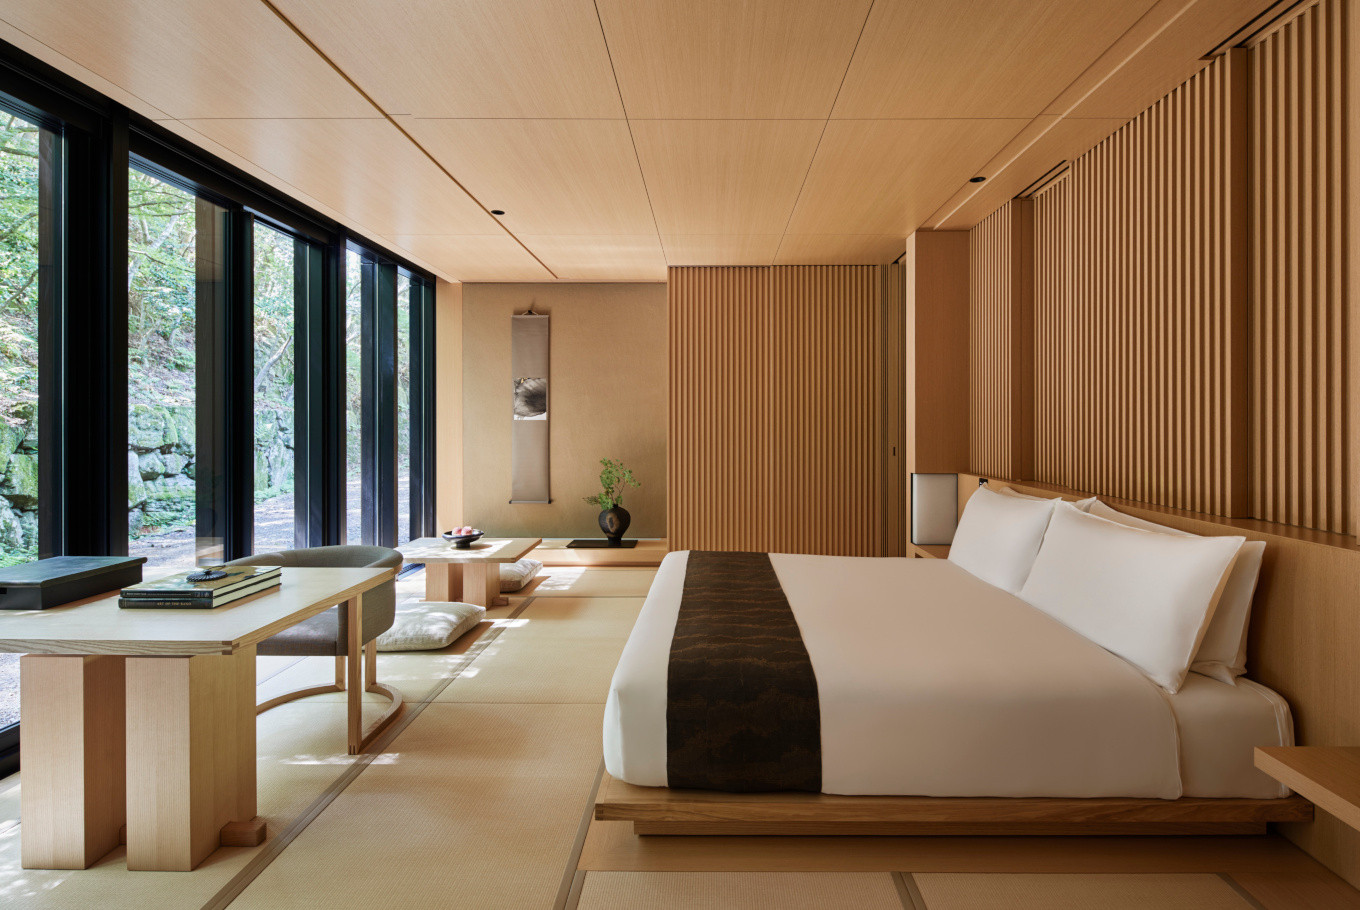 Aman to launch Aman Kyoto in November